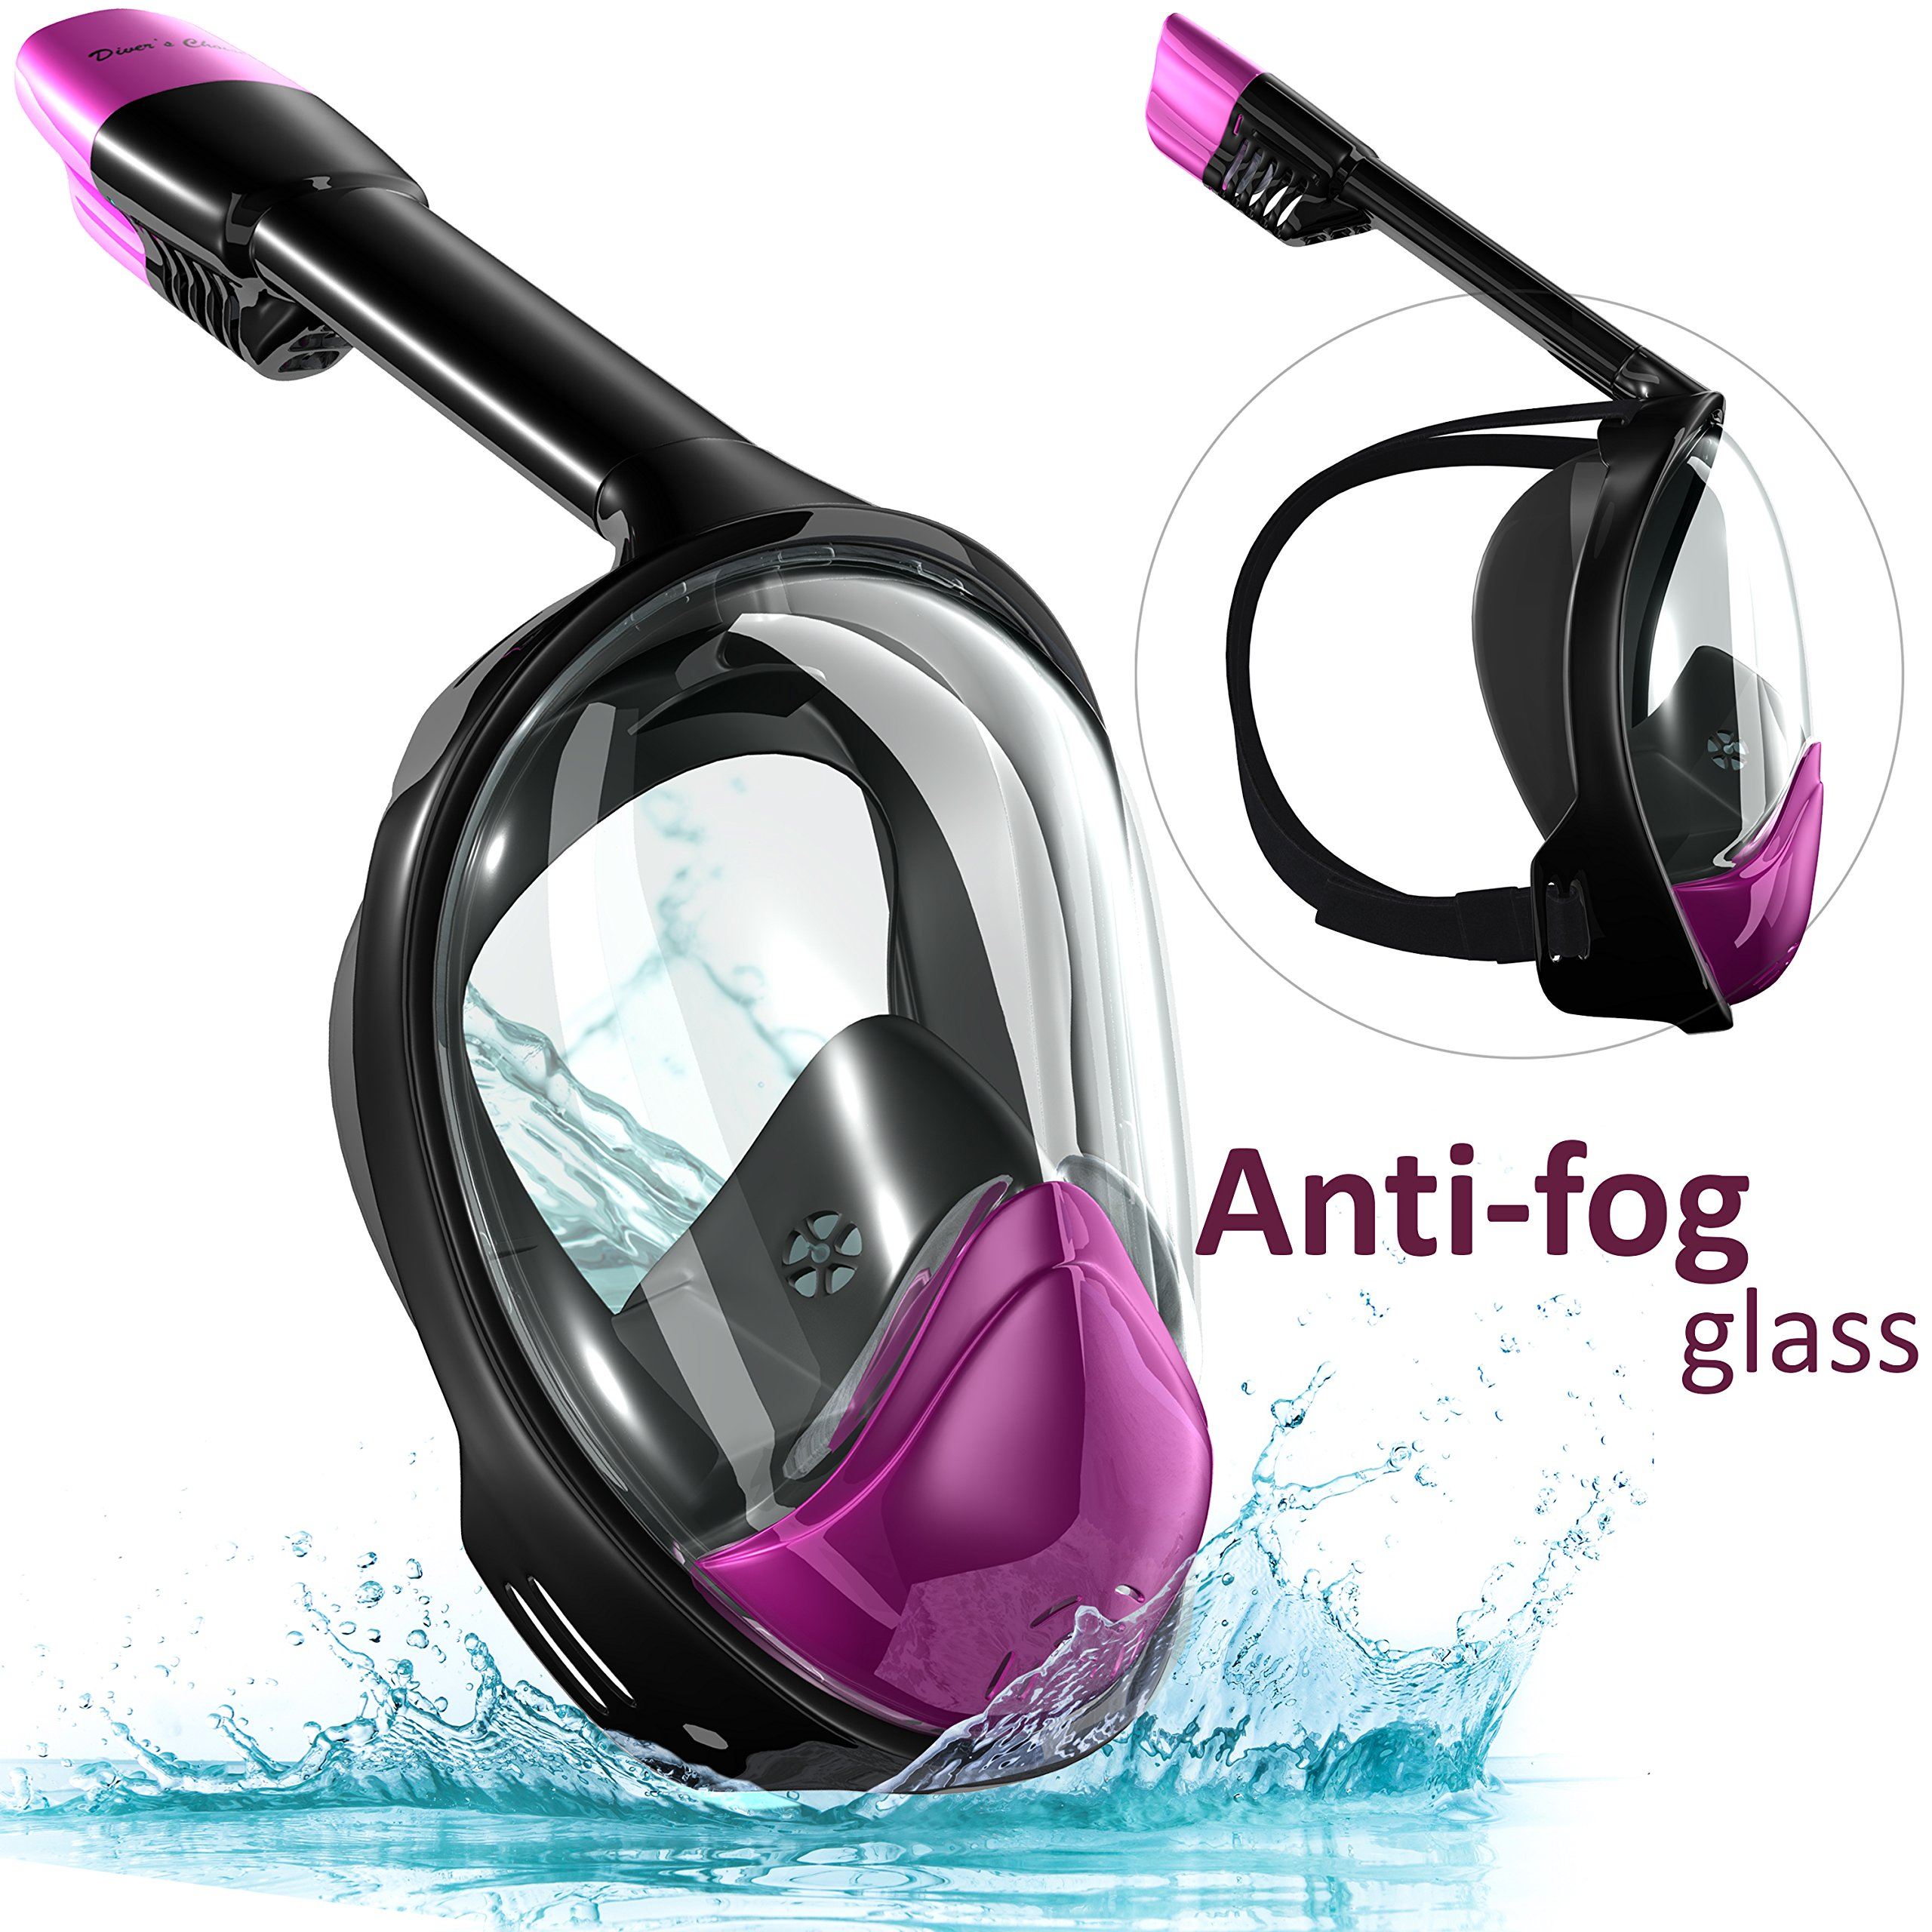 Snorkel Set Full Face Mask, Seaview with Camera Mount Divers Choice Black/Purple (Size- S-M) For Youth and Women by Diver's Choise